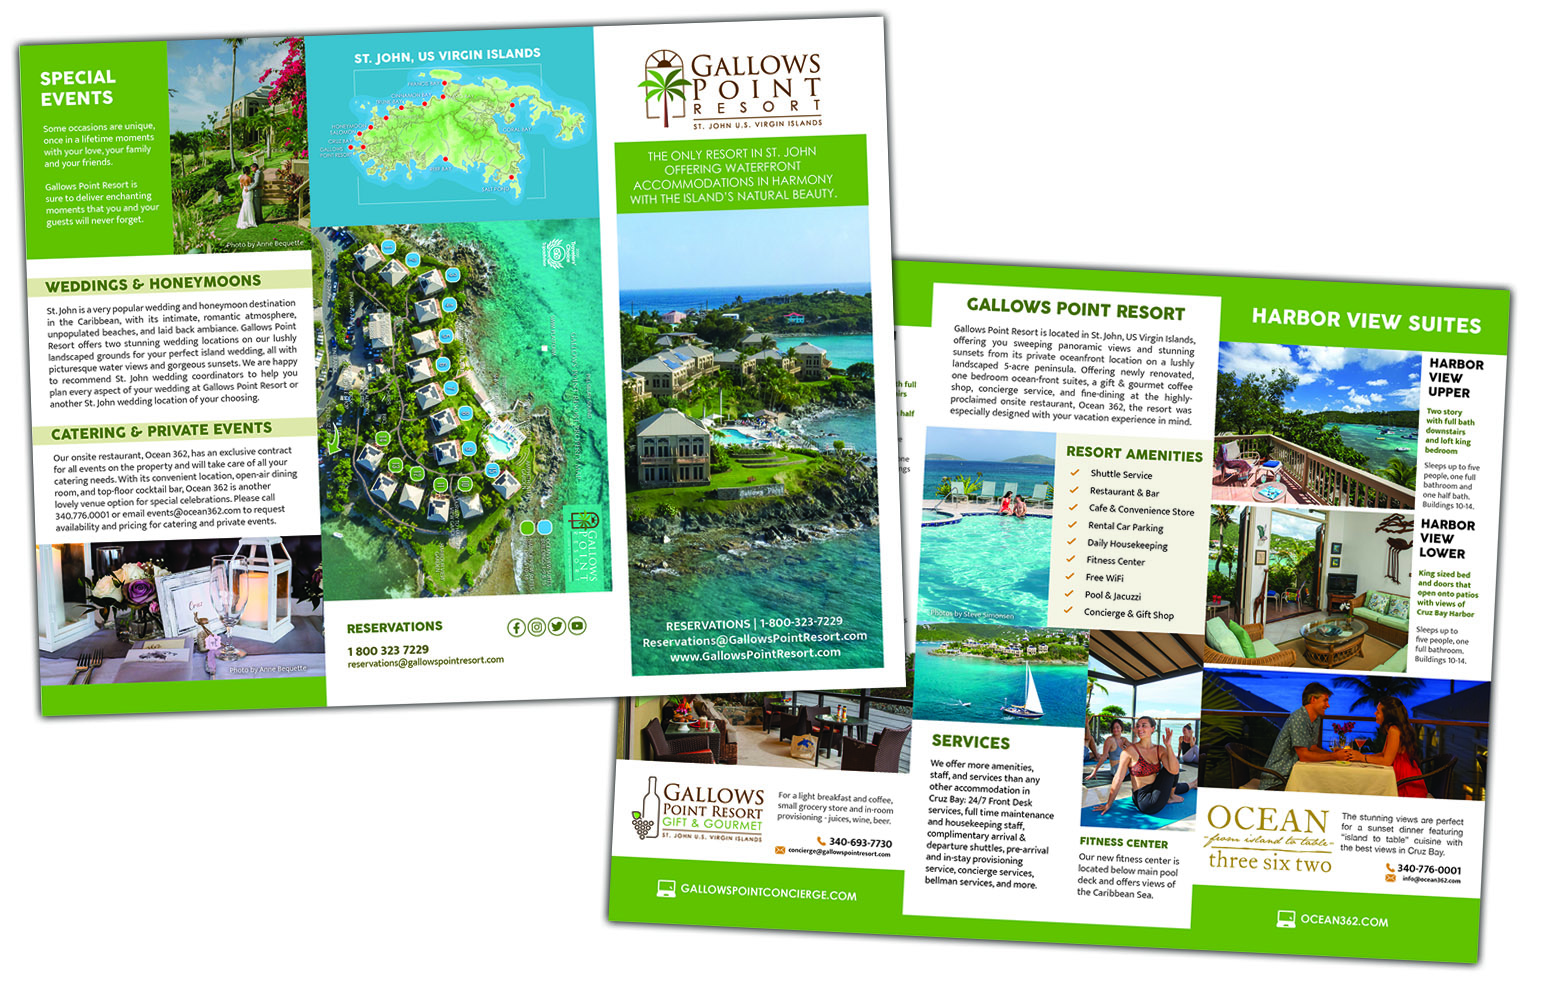 Gallows Point Resort Brochure 2020